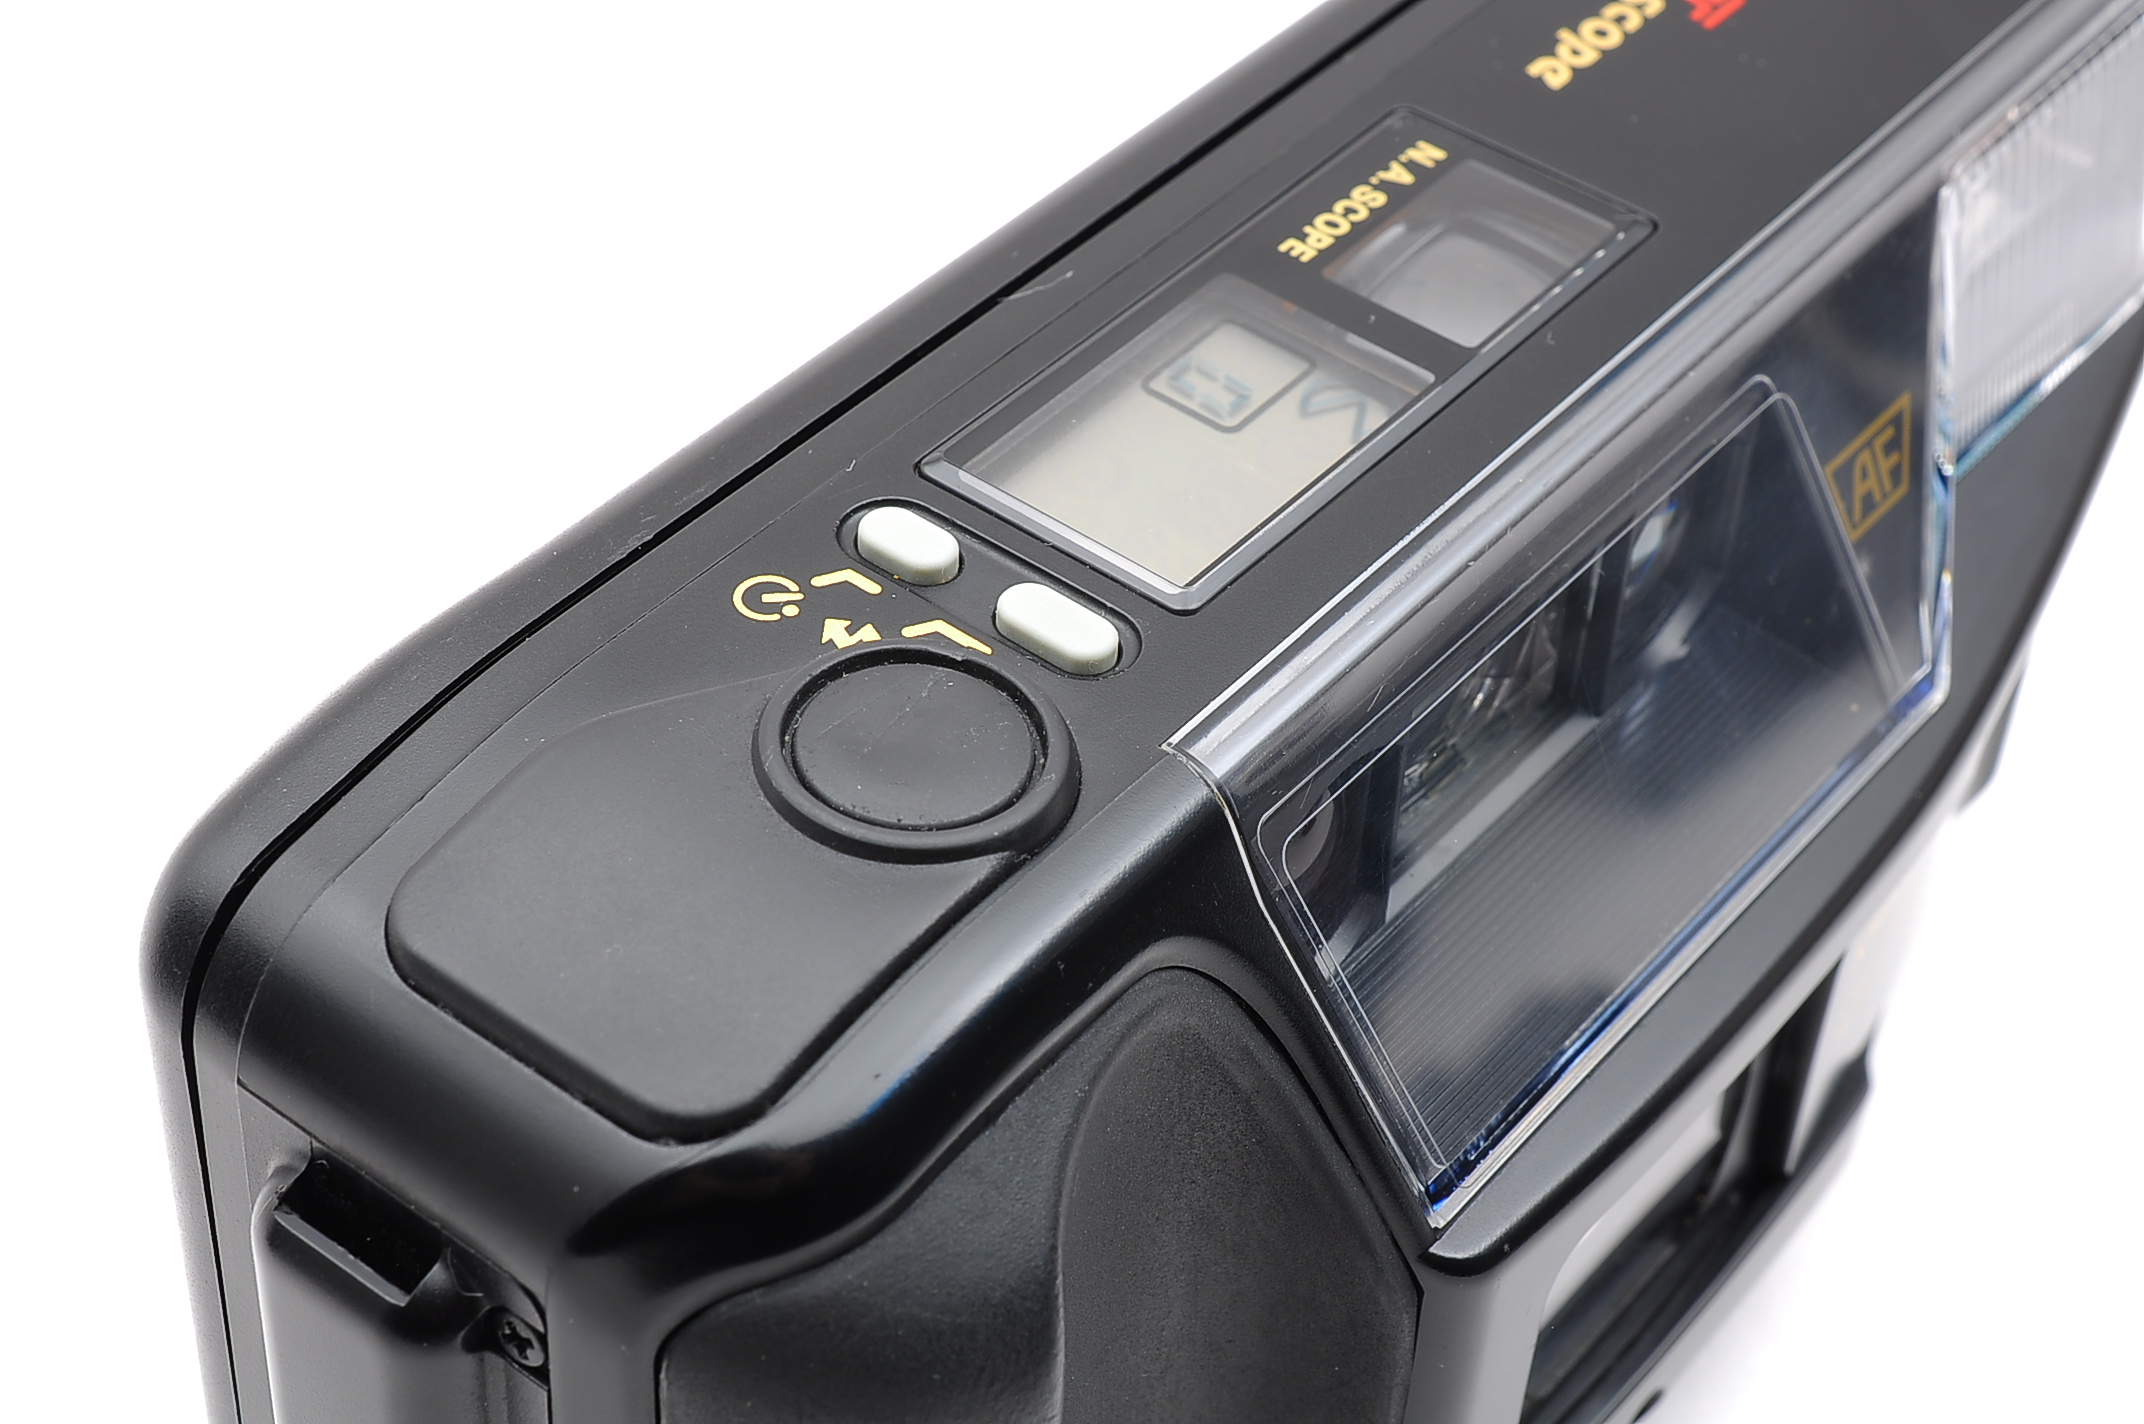 Details about Kyocera T Scope Carl Zeiss T* Tesser 35mm f/2 8 Point & Shoot  Camera -Excellent